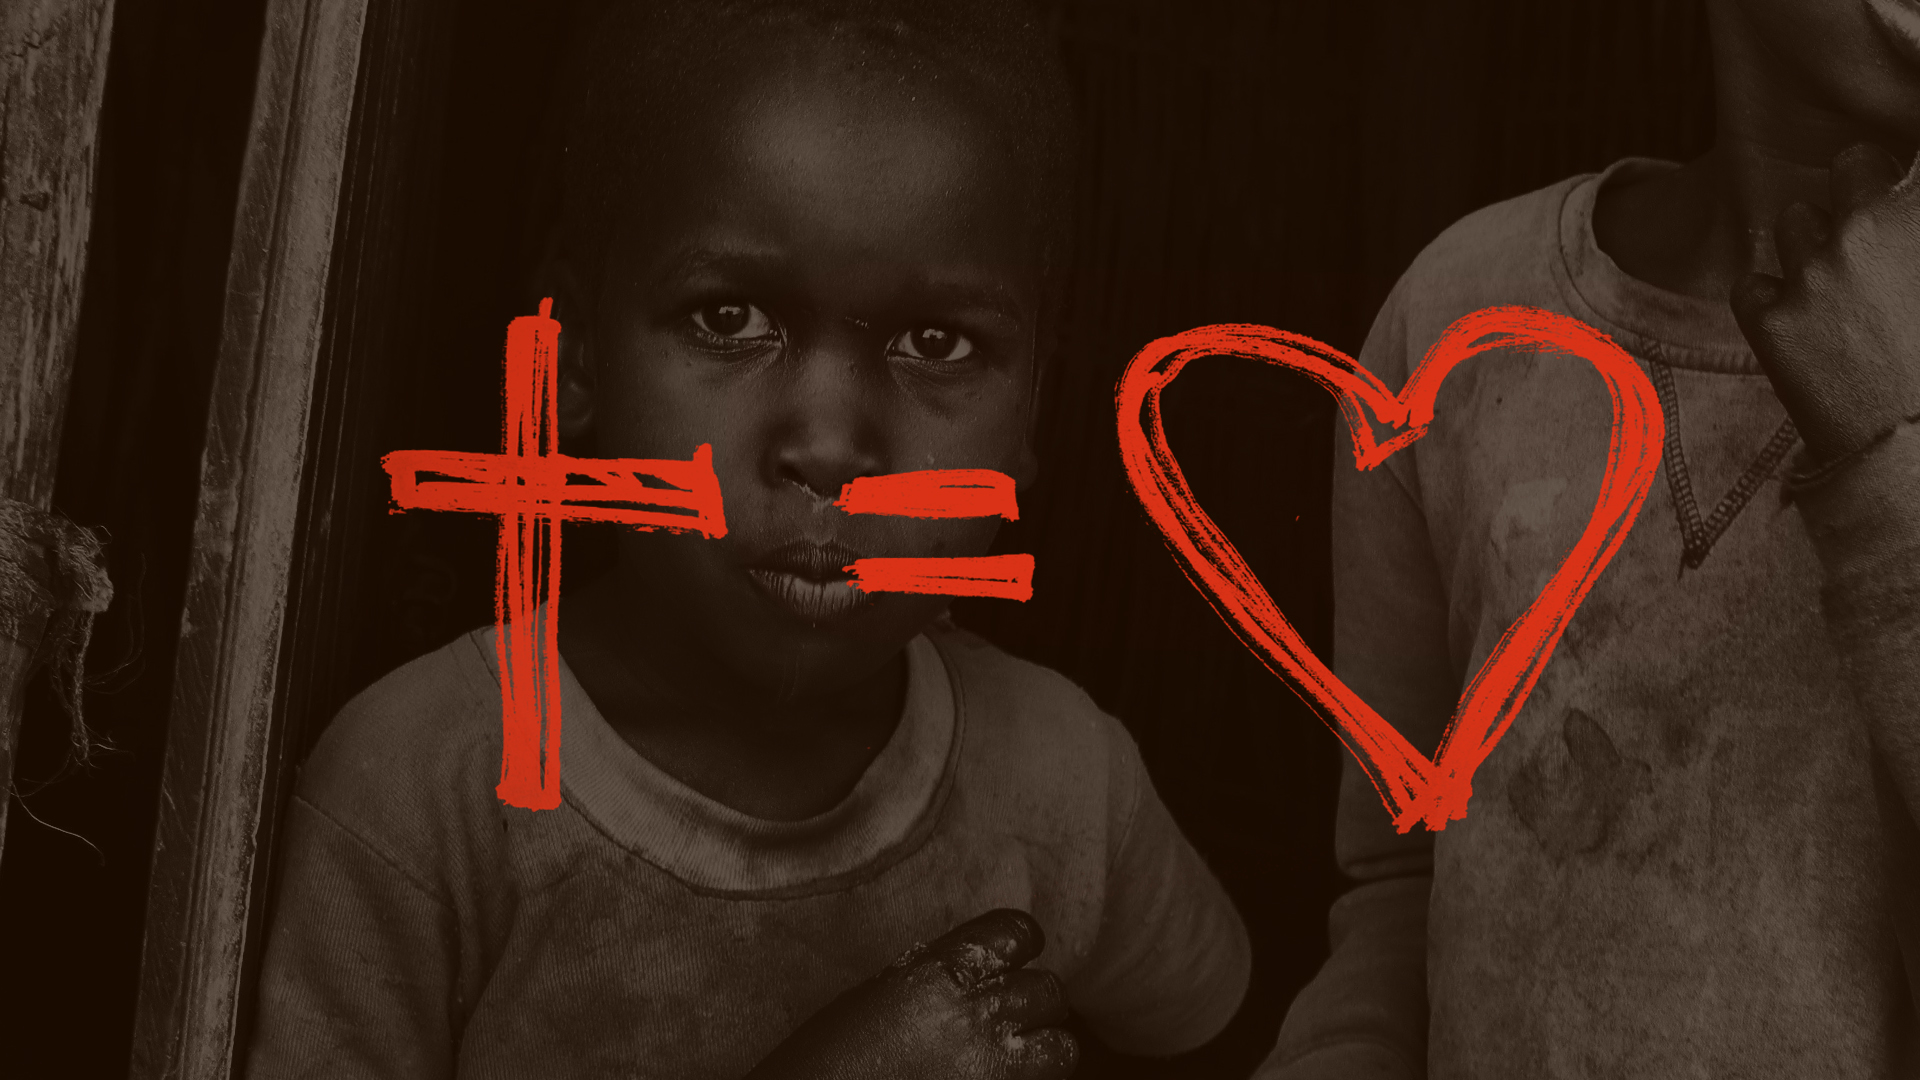 Background image: two African children in poverty - overlay drawing of Cross = Heart. Meaning through Christ we can love our neighbour and achieve a measure of social justice